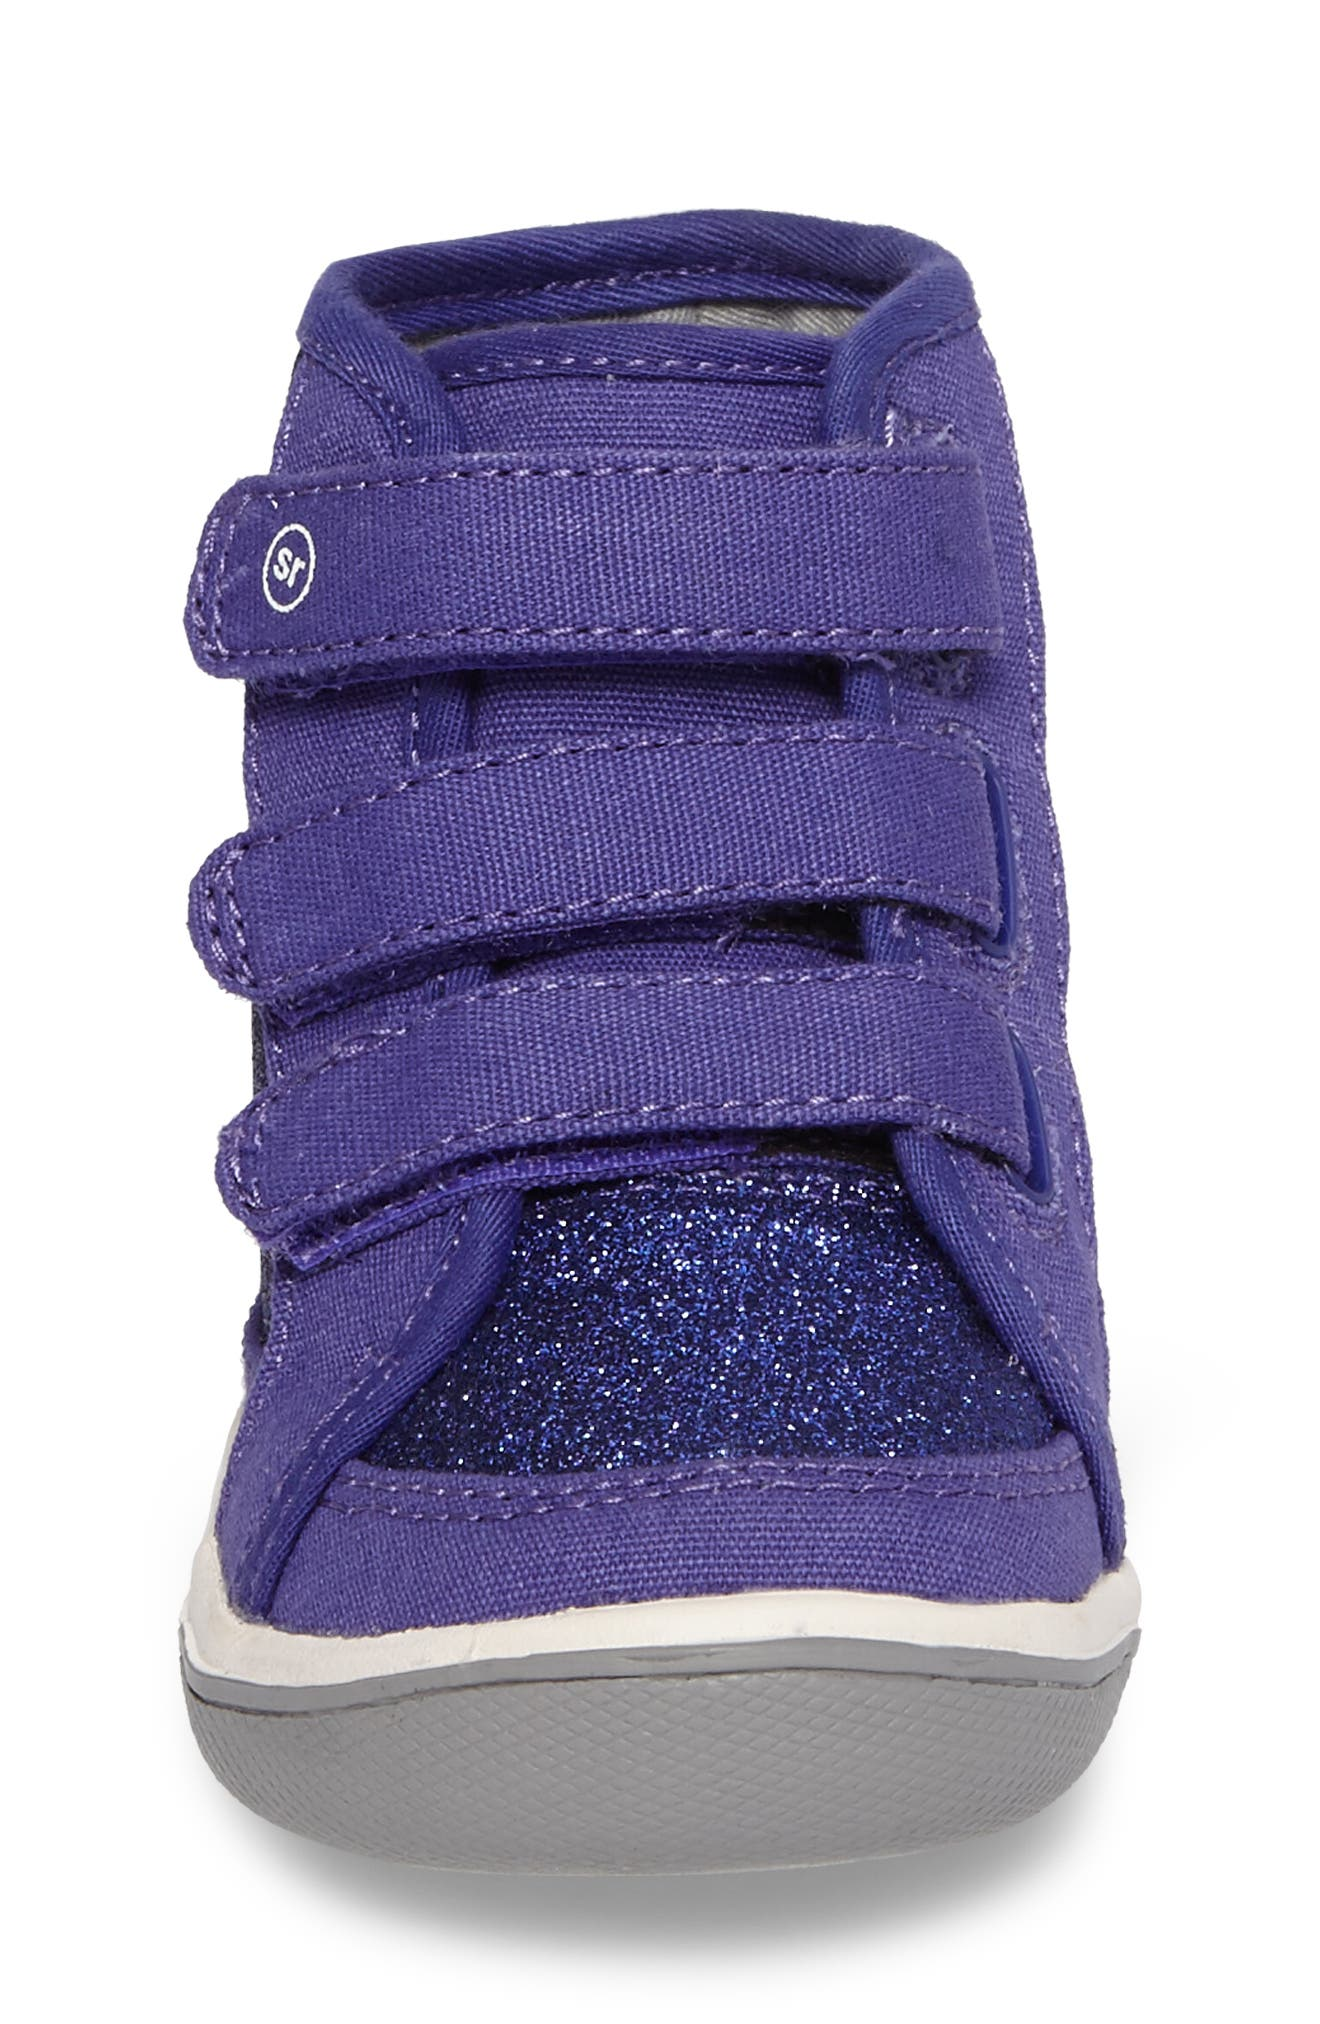 Ellis Glitter High Top Sneaker,                             Alternate thumbnail 4, color,                             Purple